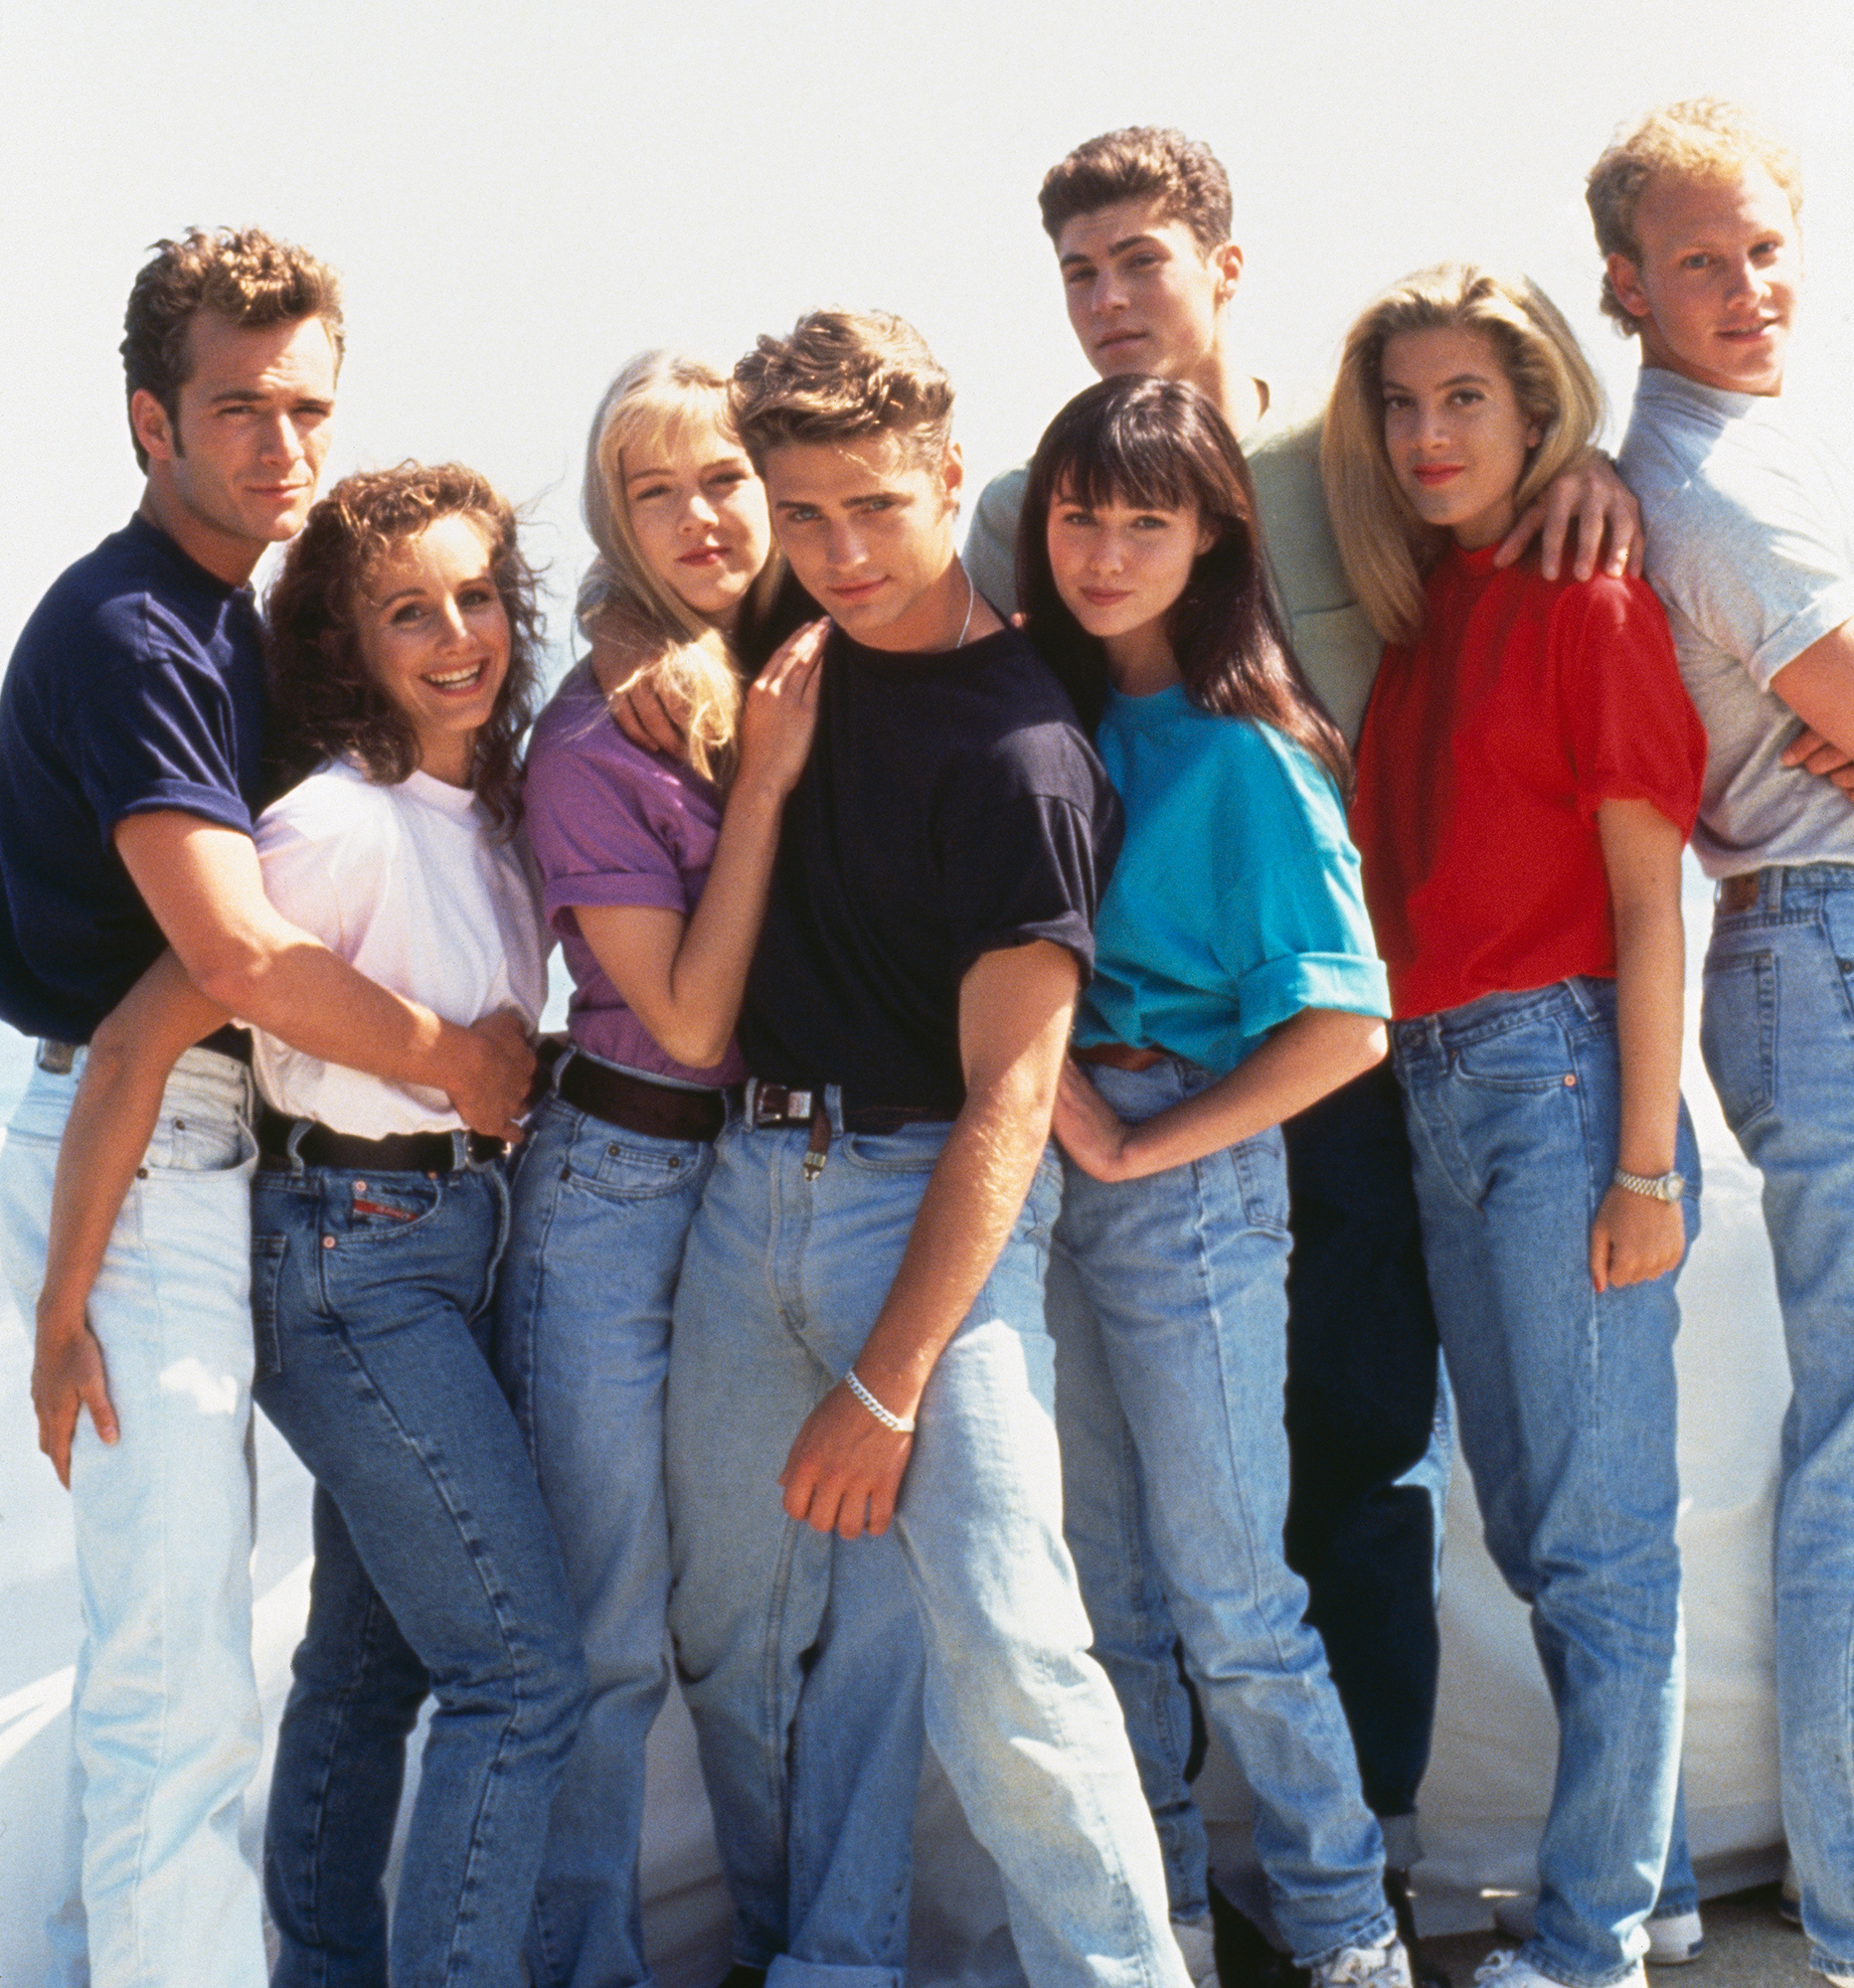 Jason Priestly Breaks Silence After Luke Perry Death - Jennie Garth, Brian Austin Green, Gabrielle Carteris, Jason Priestley, Luke Perry, Ian Ziering, Shannen Doherty and Tori Spelling in Beverly Hills 90210.